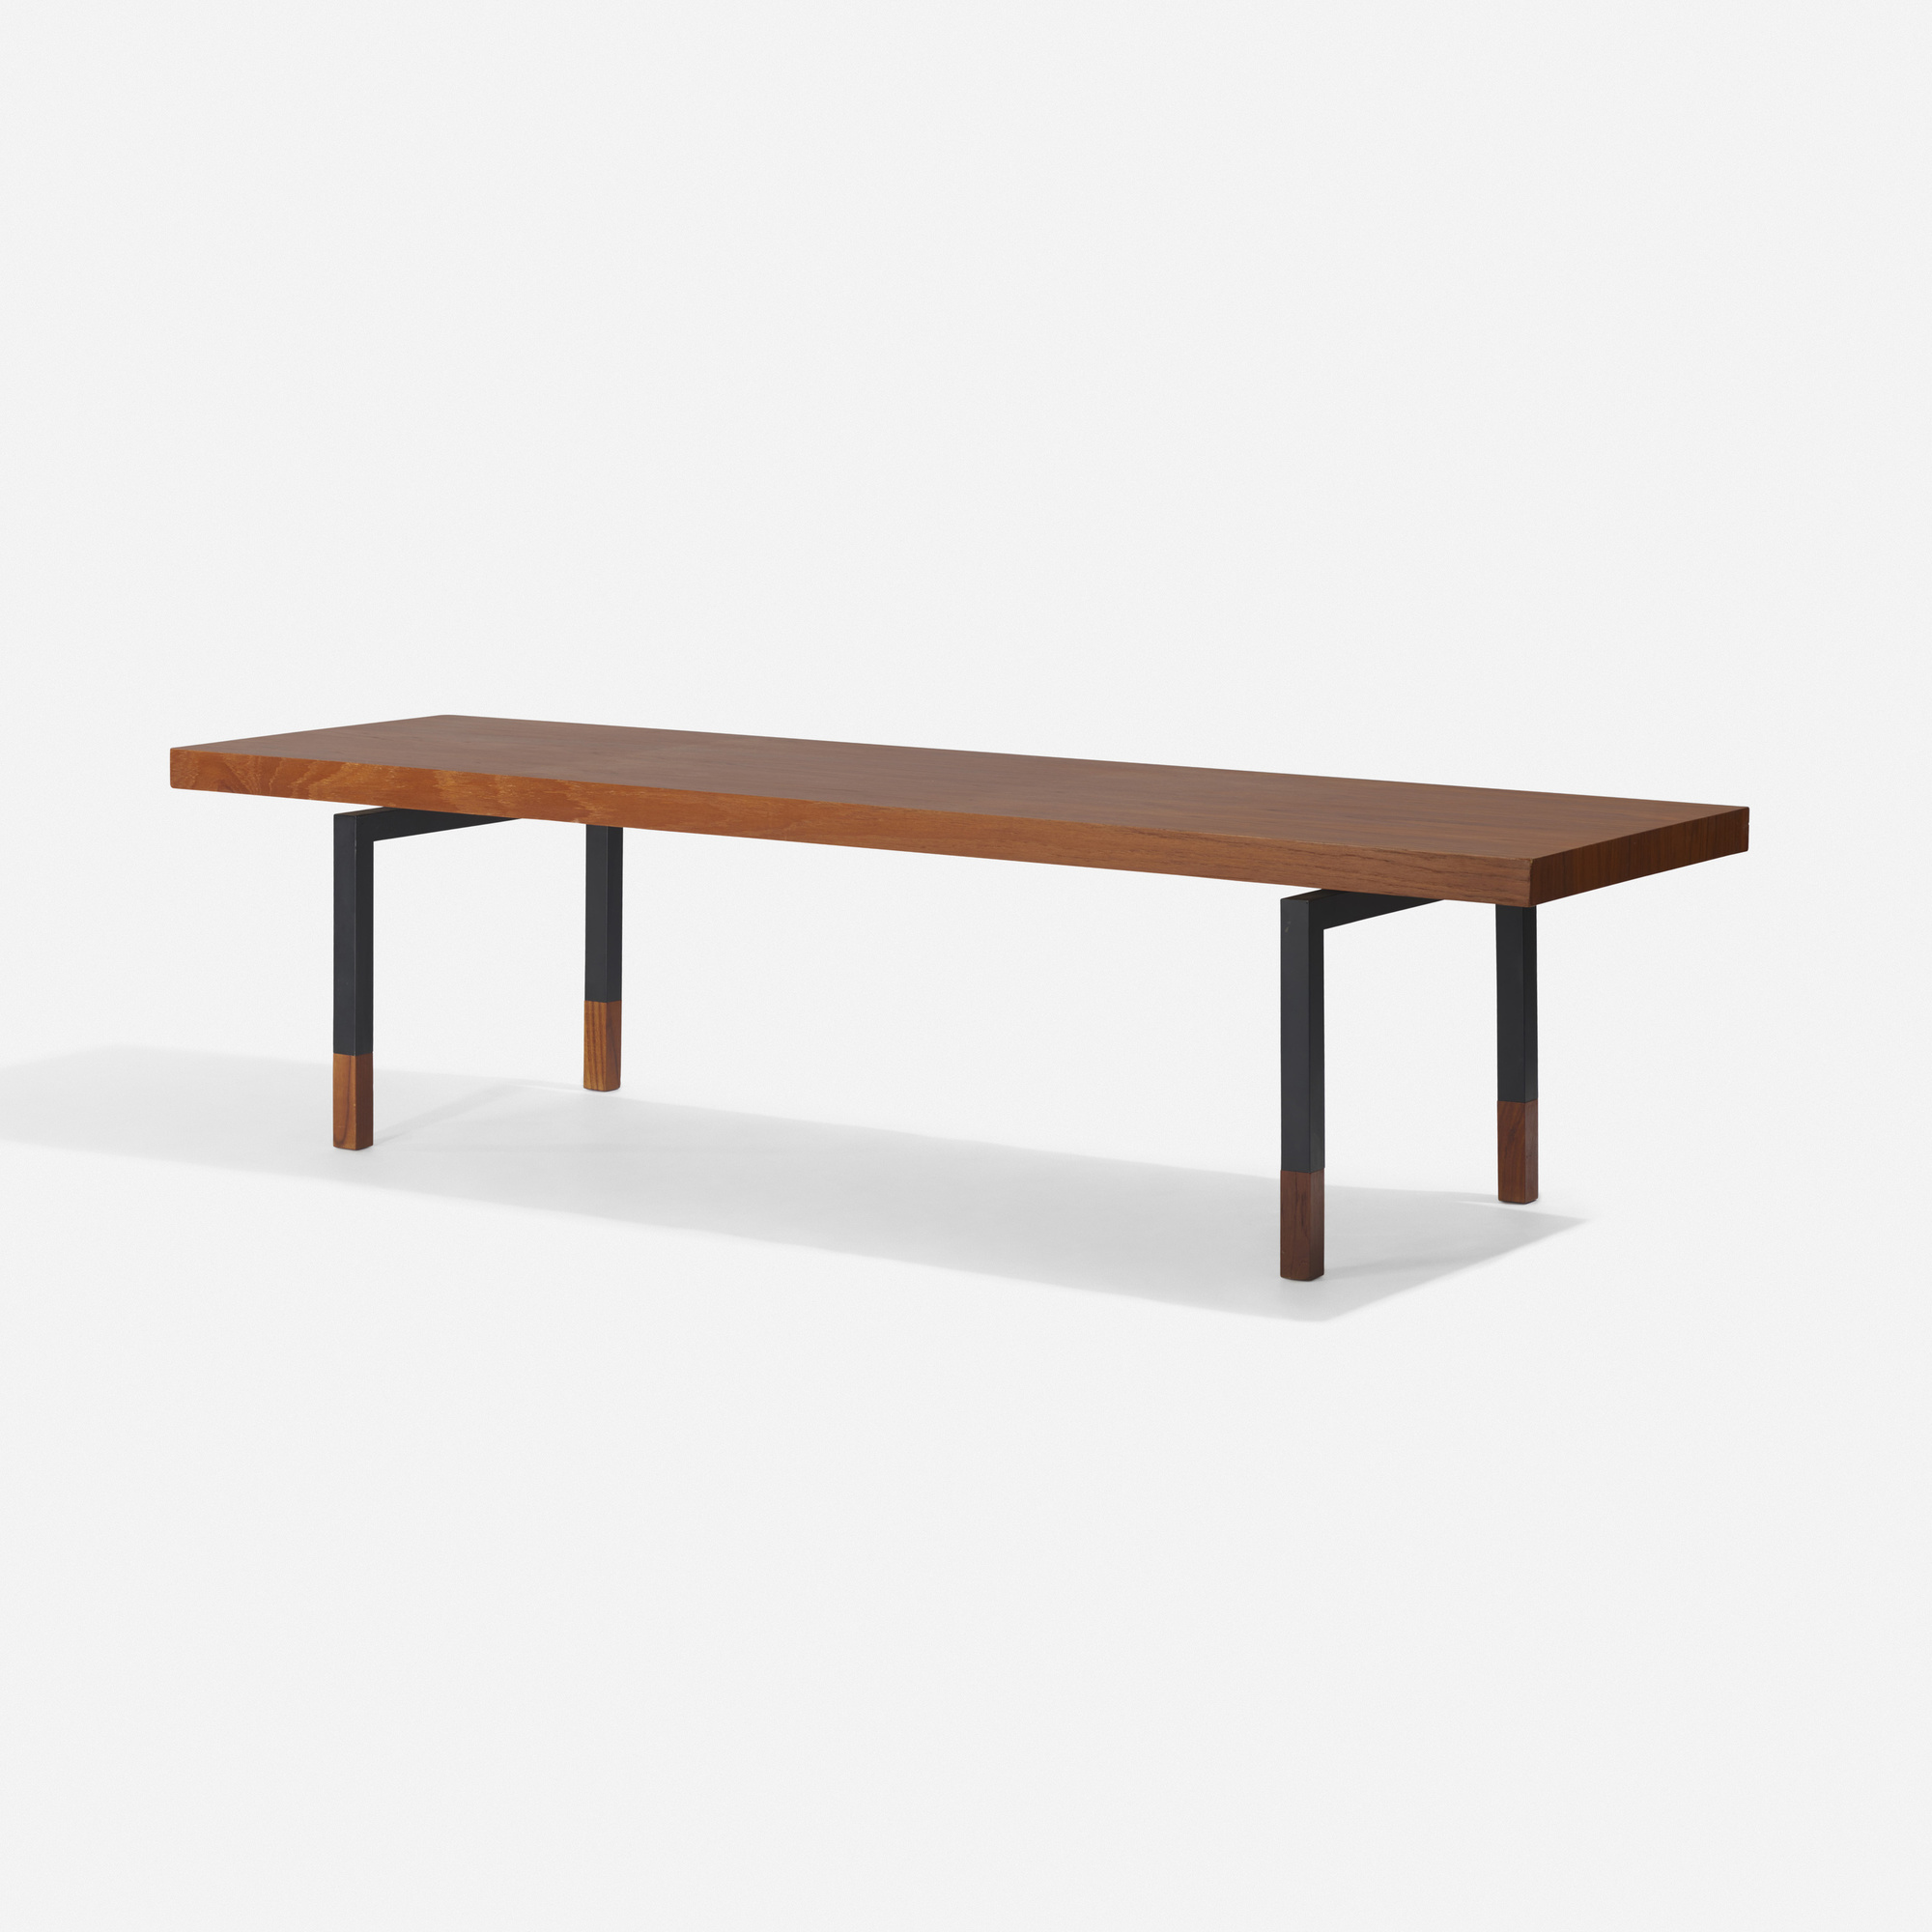 148: Johannes Aasbjerg / coffee table (1 of 3)